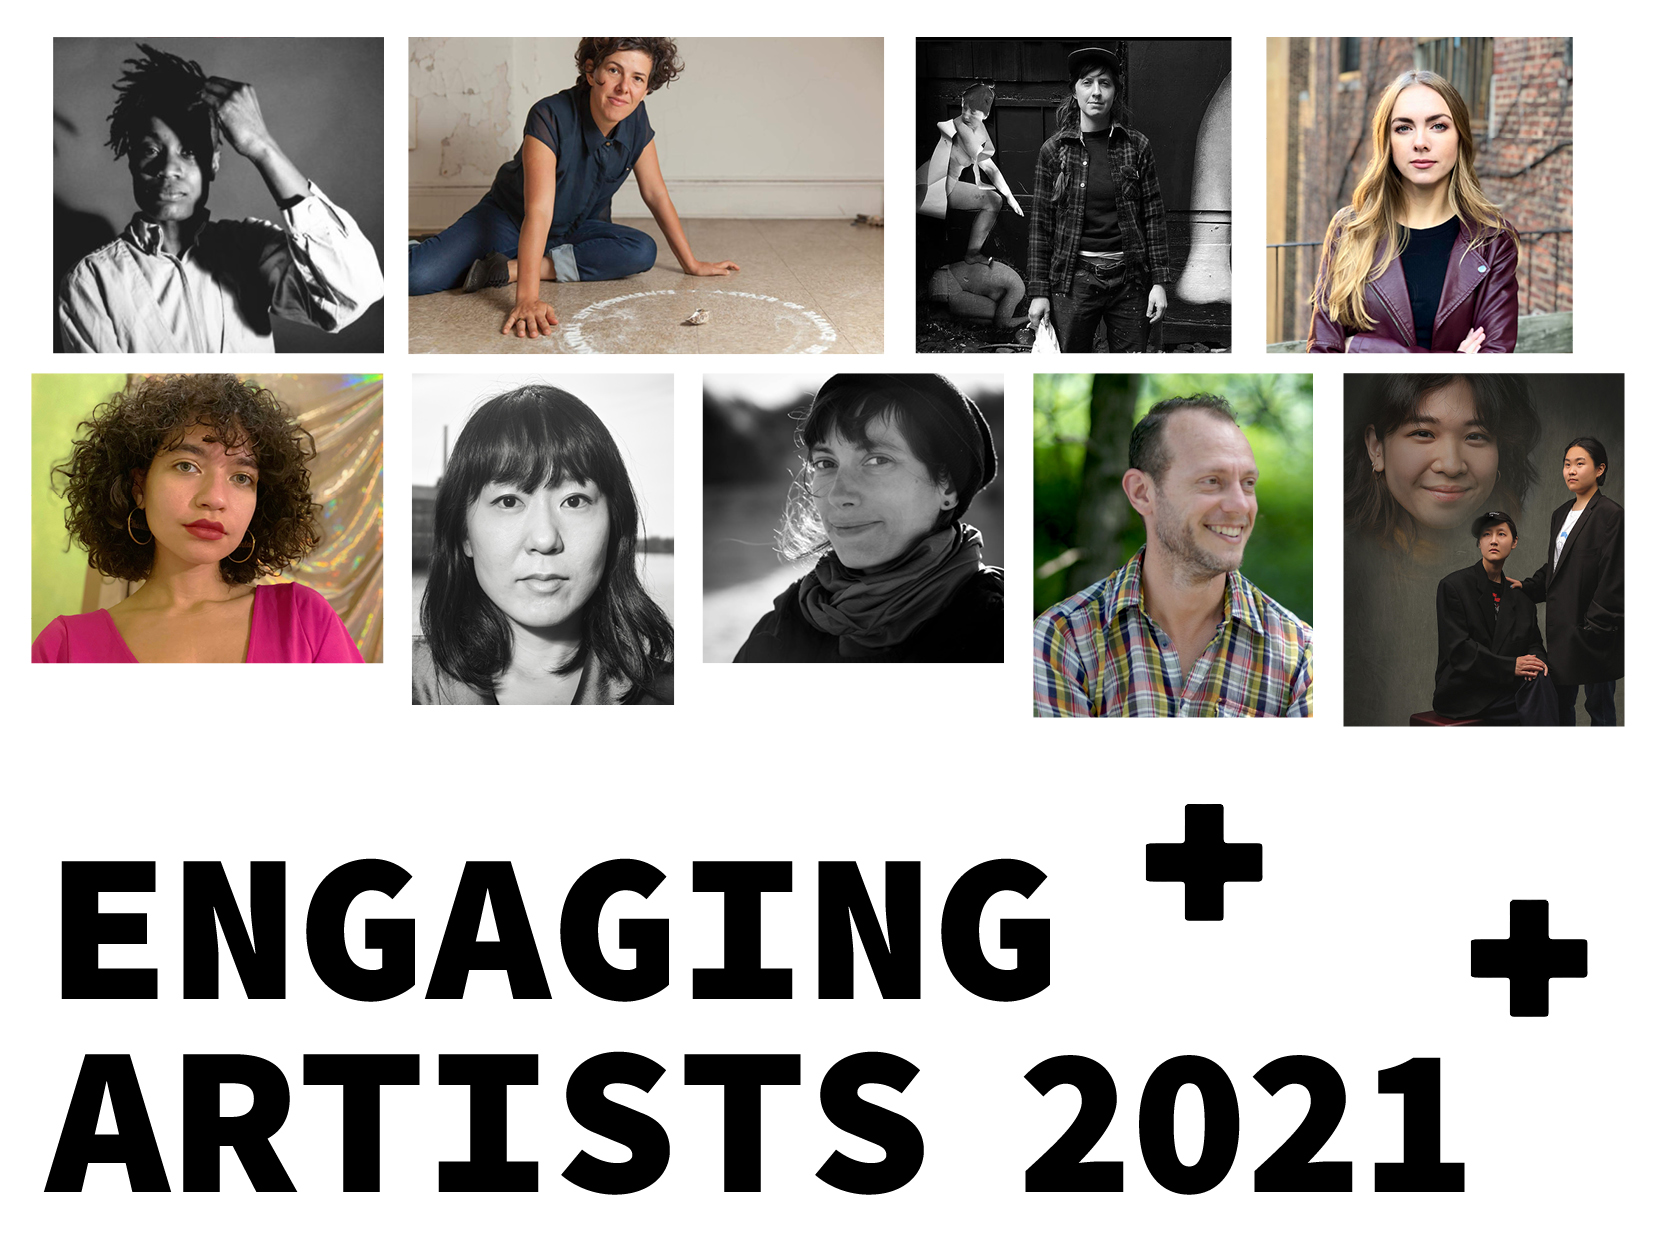 "A loose grid of headshots of 8 artists and one artist collective with 3 people. There is black text saying ""Engaging Artists 2021"" below the grid. They are a mix of ages, mostly young and mid-age, mostly female or female presenting, one male. There are white people and people of color."